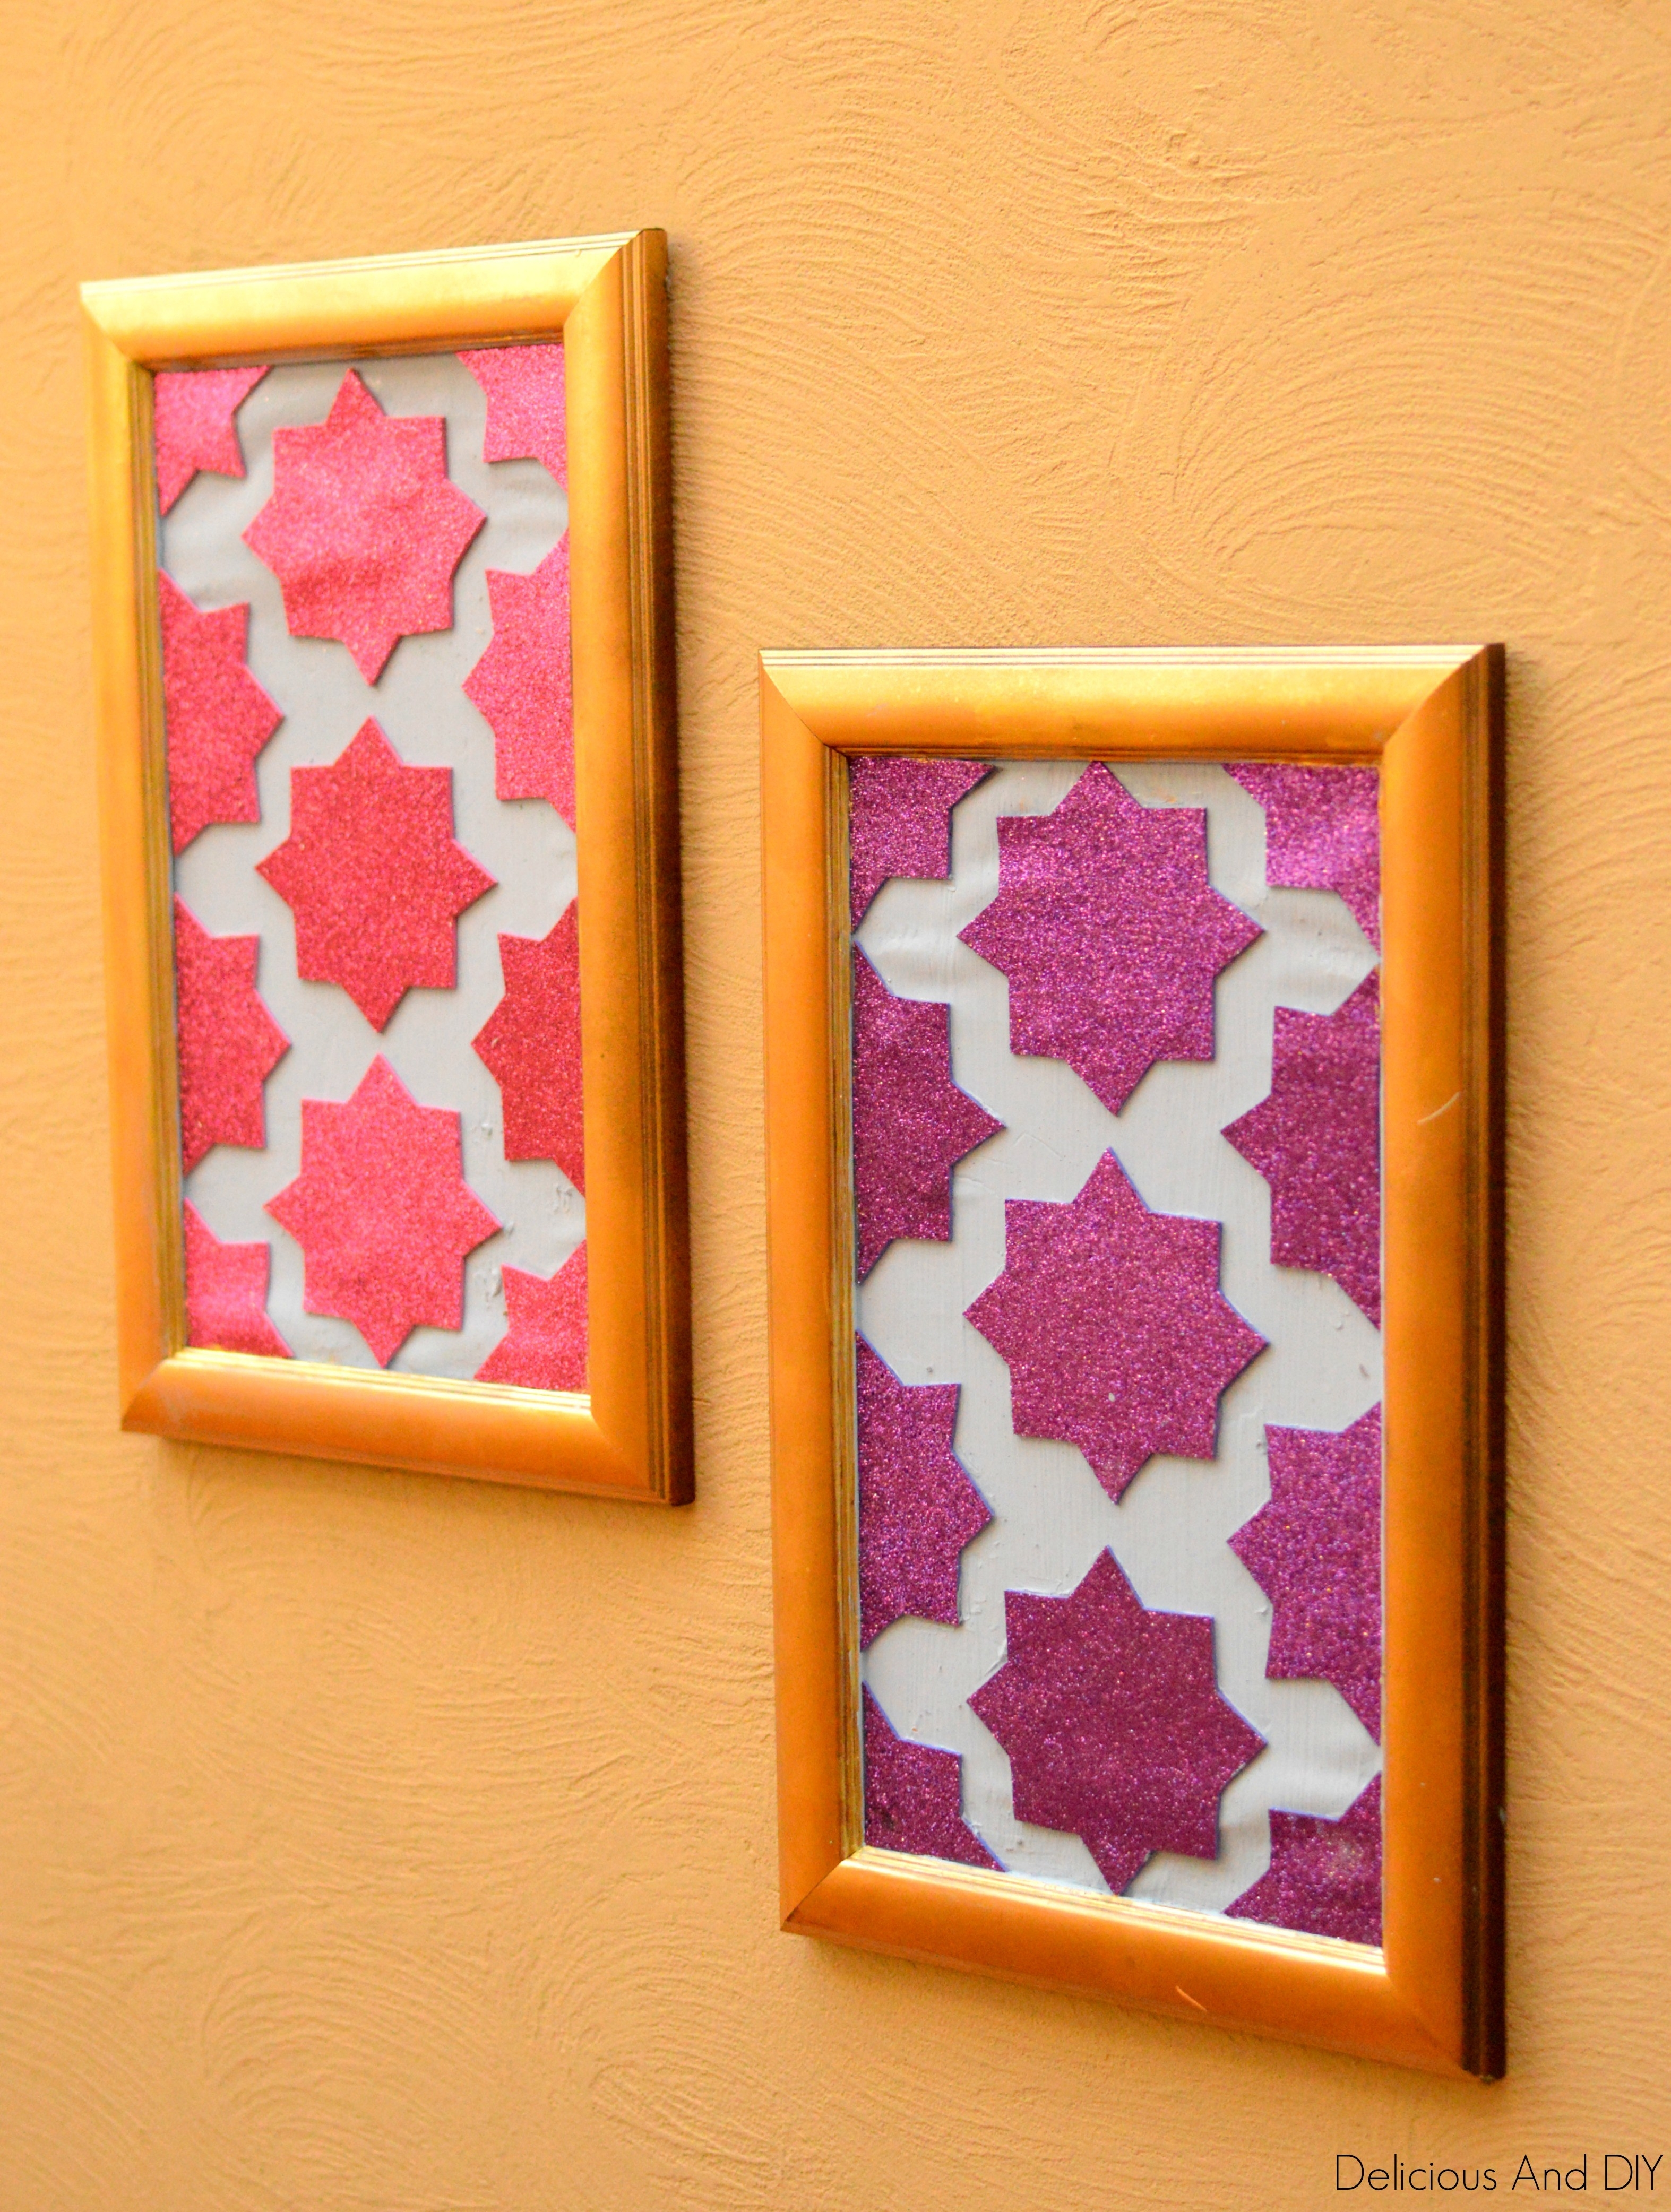 Diy Moroccan Wall Art – Delicious And Diy Within Moroccan Wall Art (View 14 of 20)